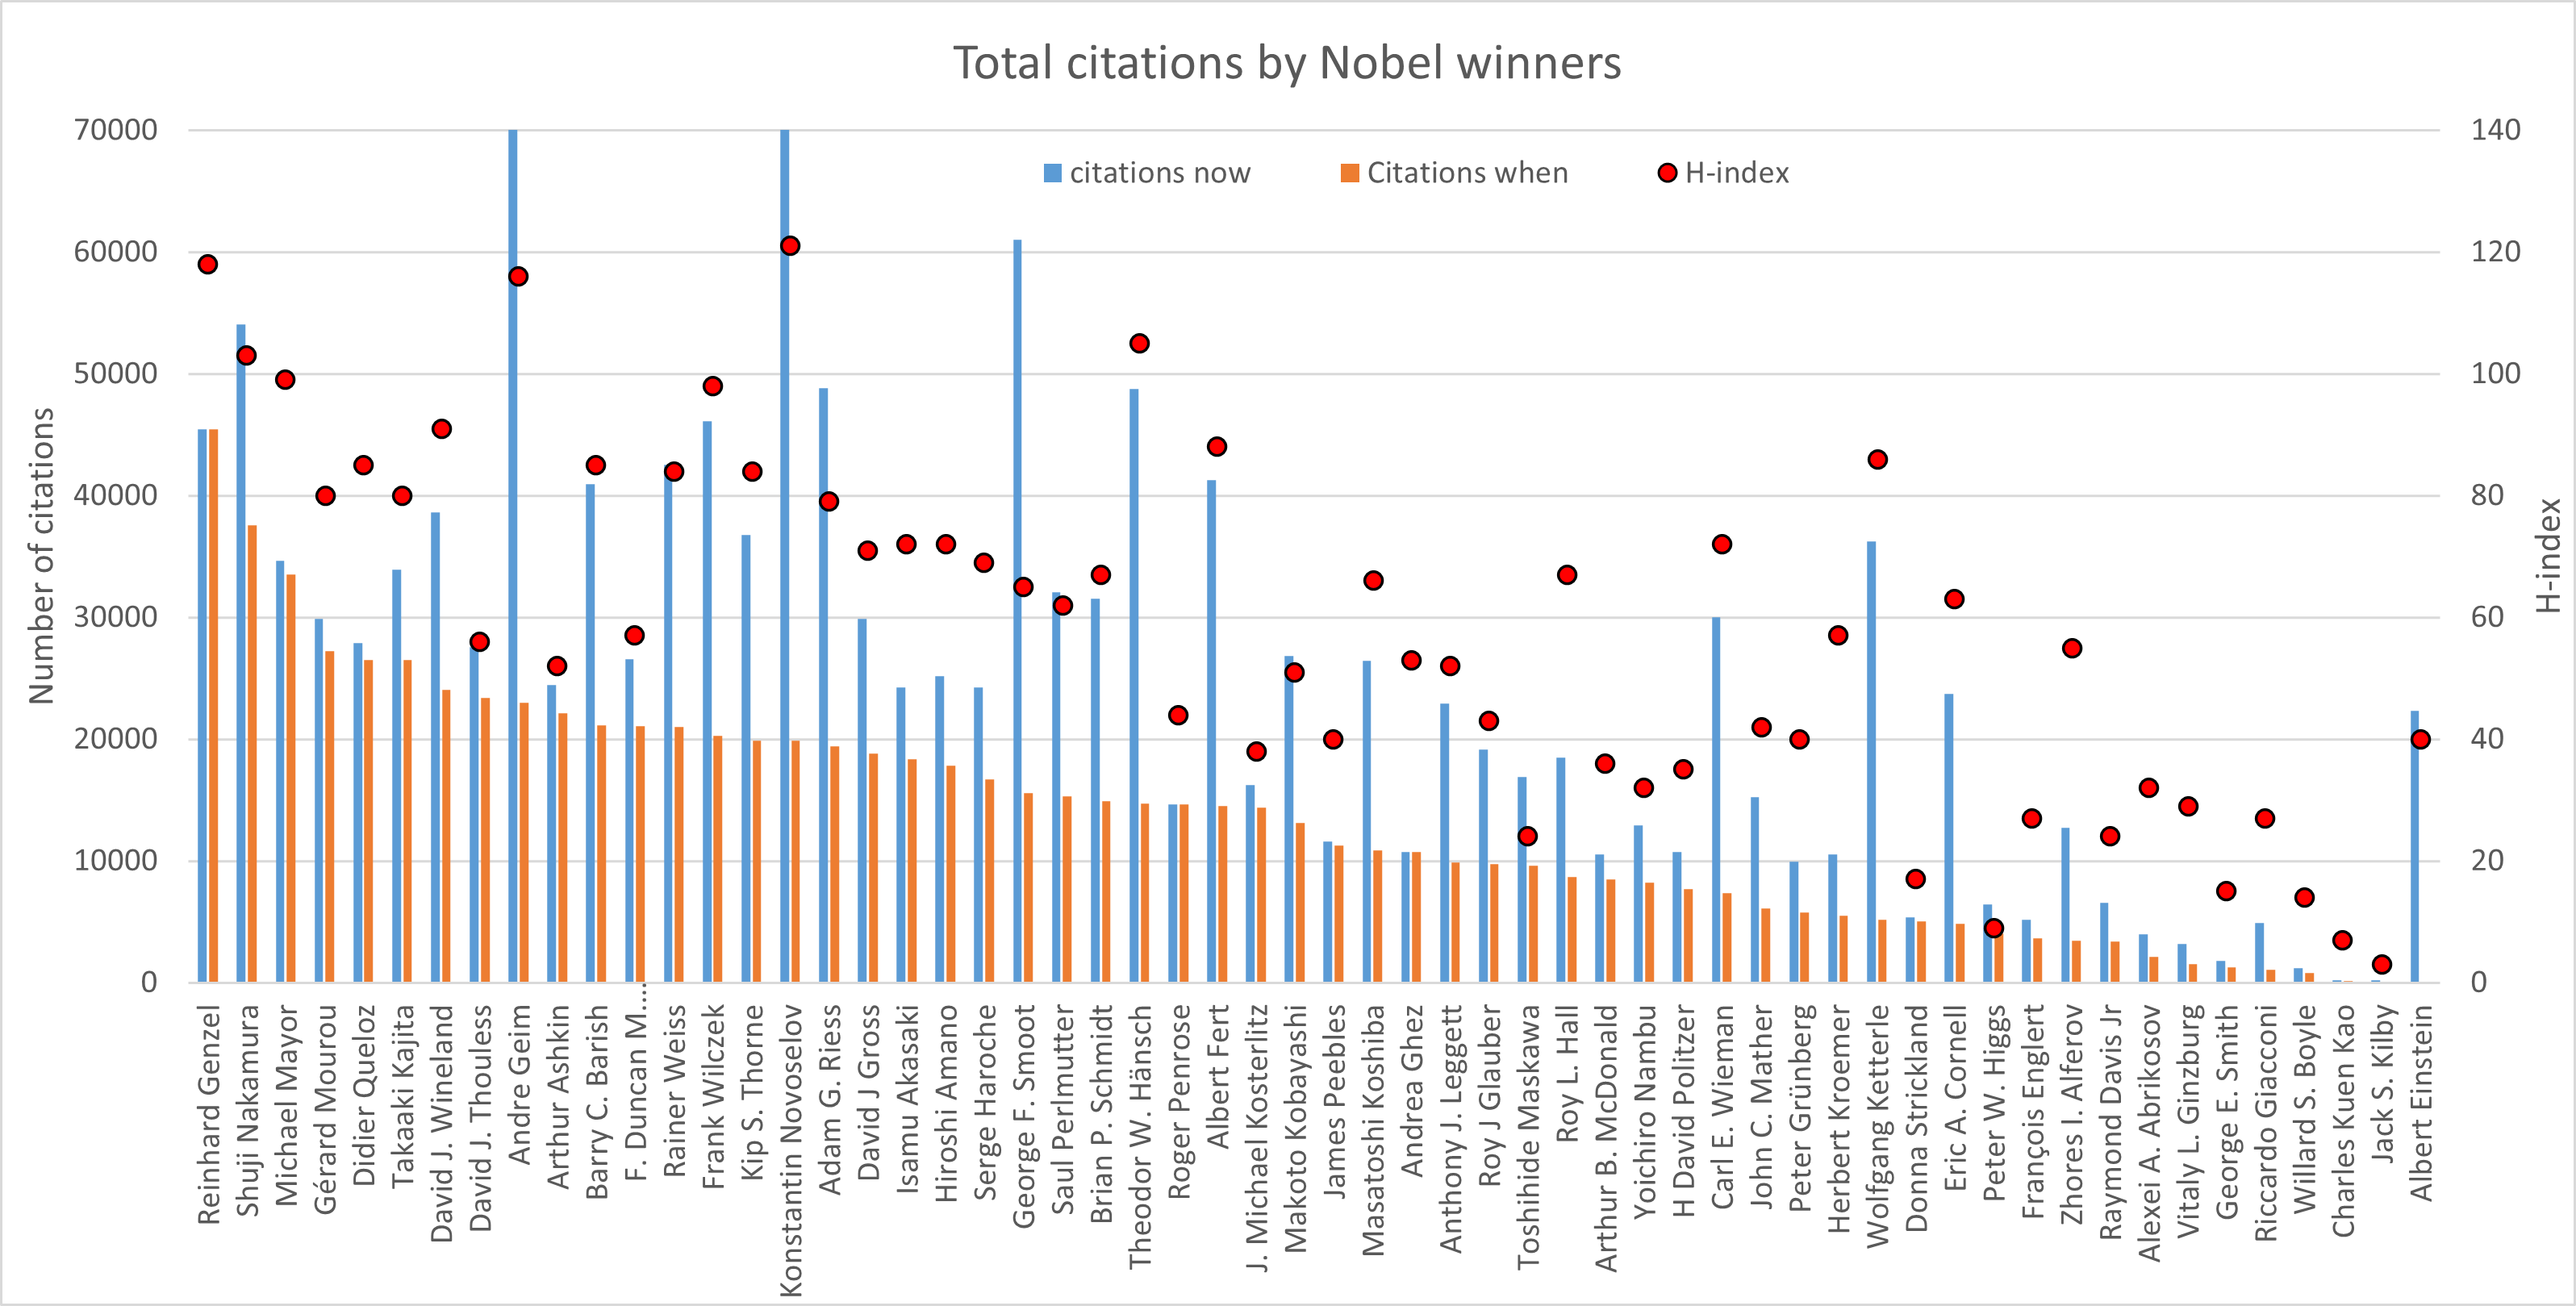 Total number of citations for the Nobel prize winners in physics 2000-2020.